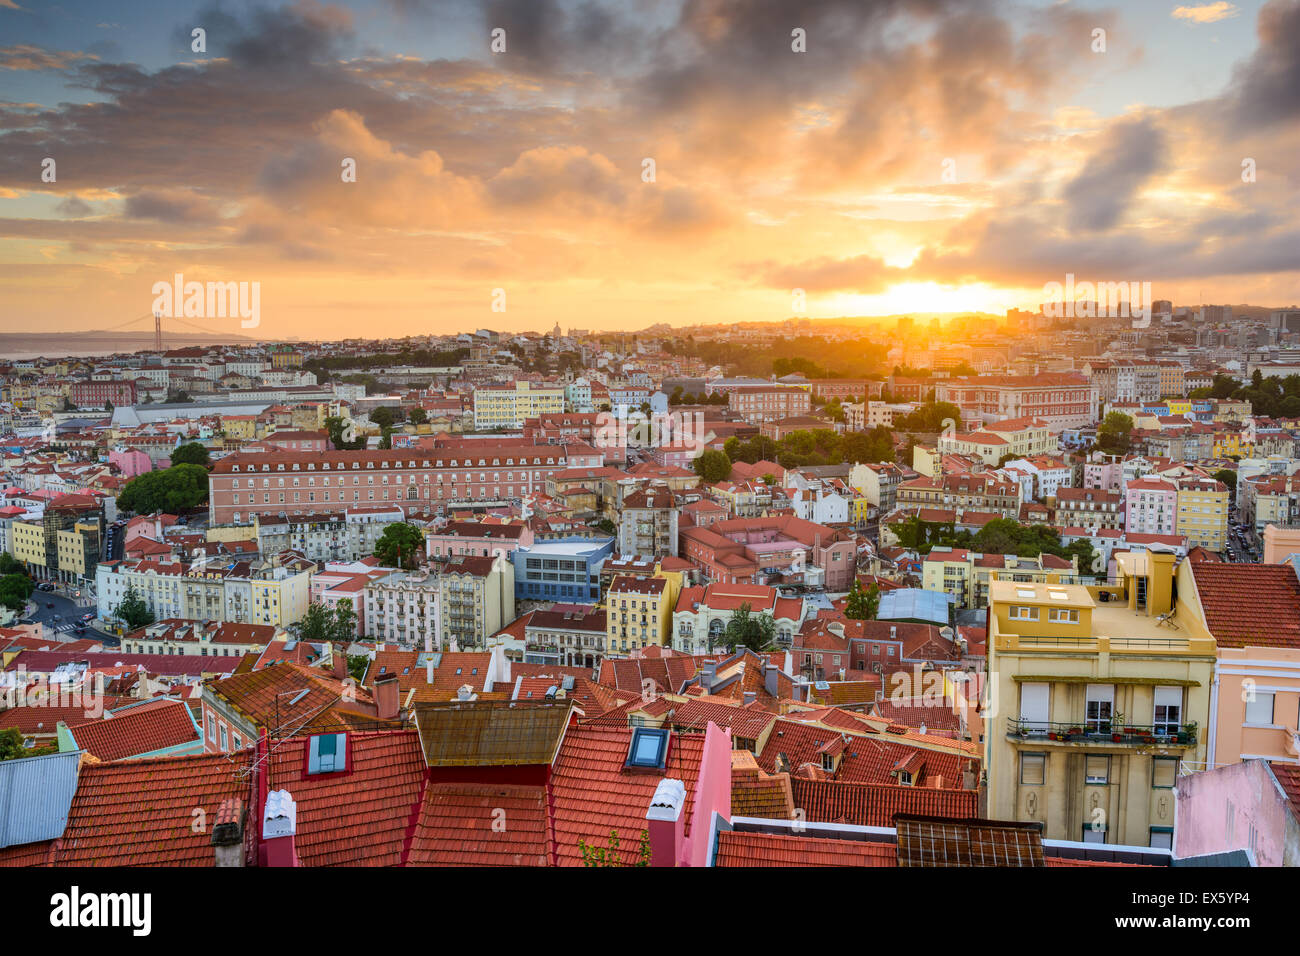 Lisbonne, Portugal vieille ville skyline at sunset. Photo Stock